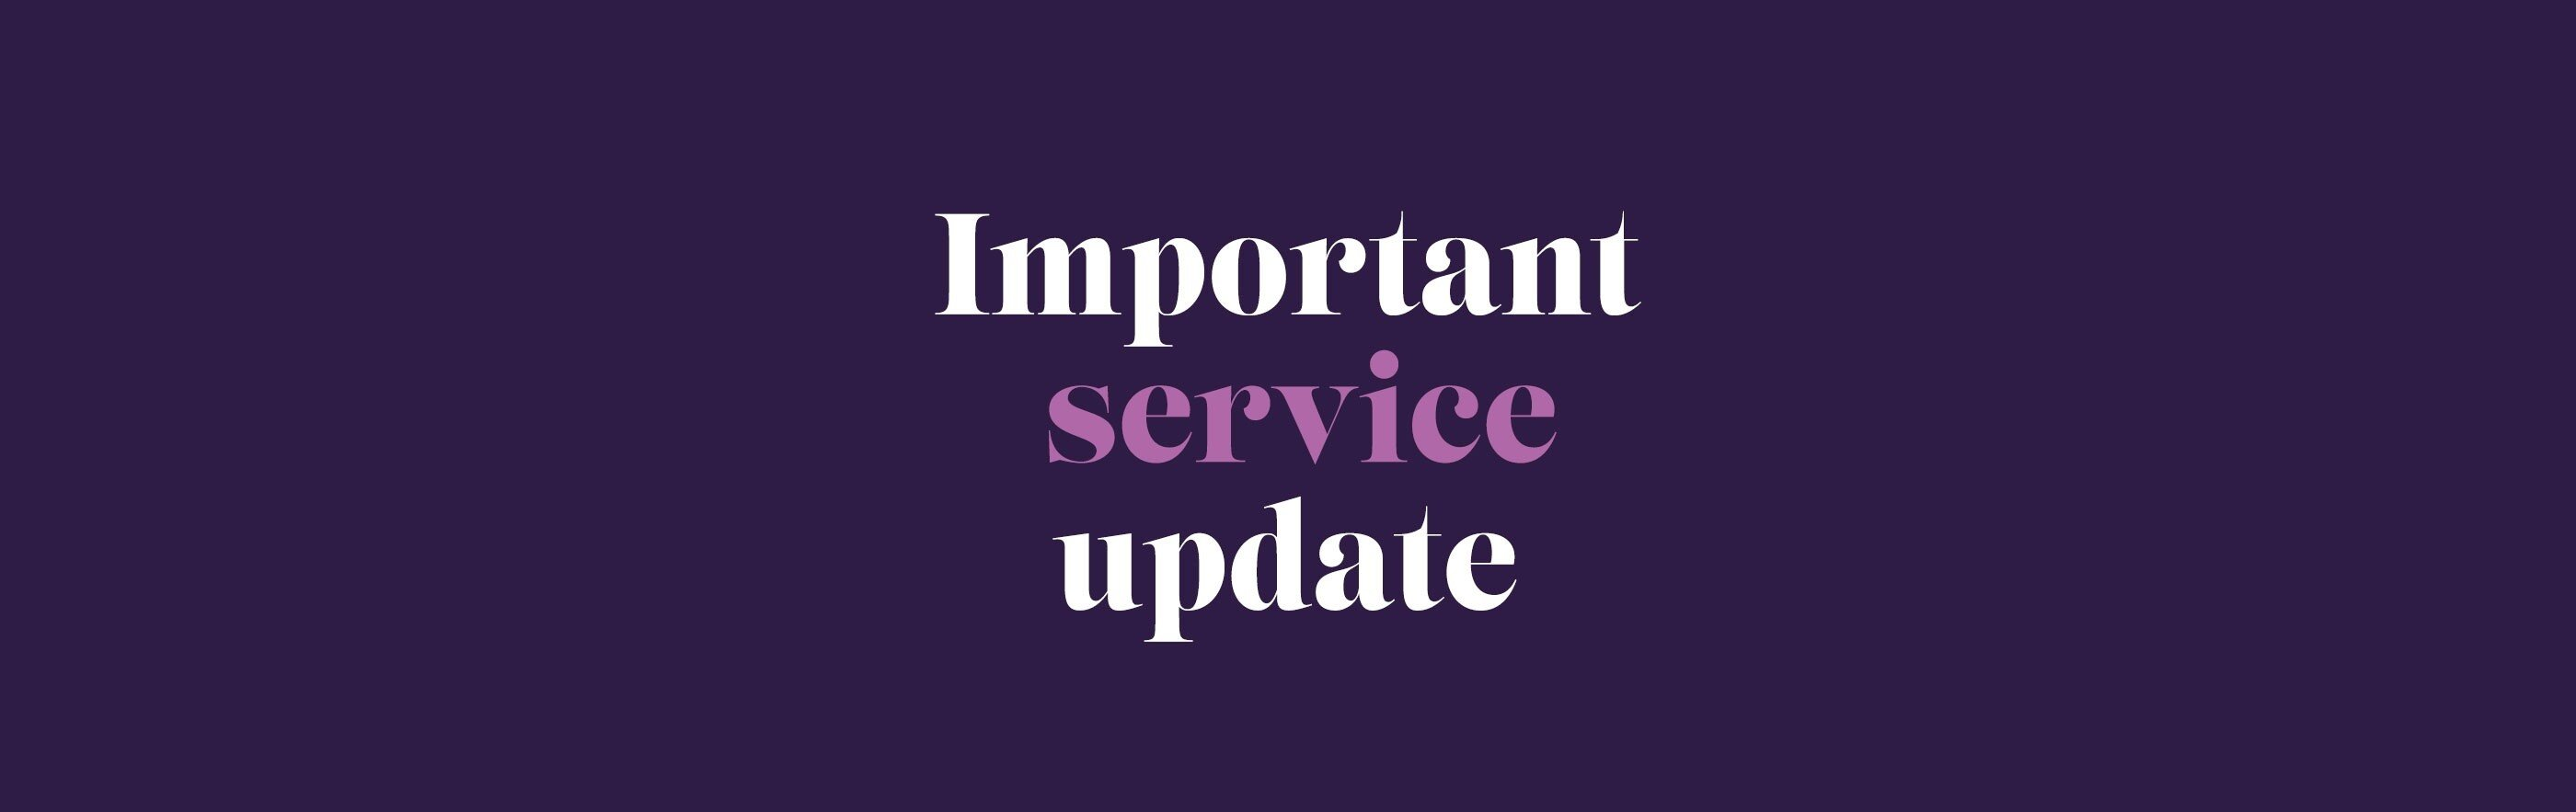 Important service update